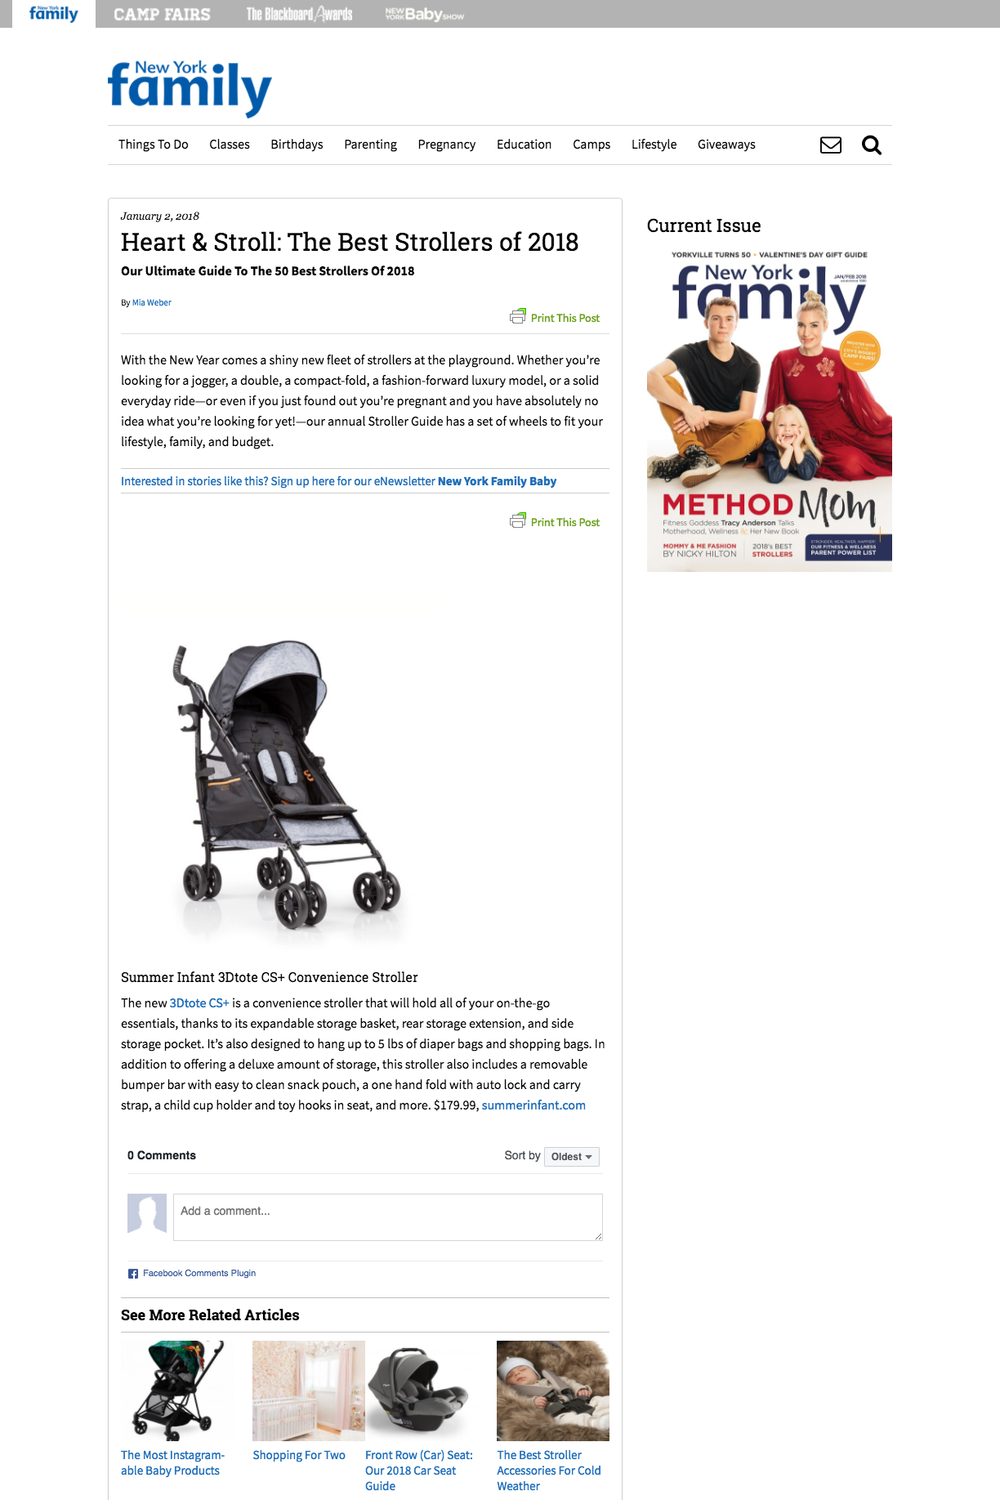 2018.01.02_New York Family Online_Summer Infant 3Dtote CS+ Convenience Stroller_cropped 2x3.png